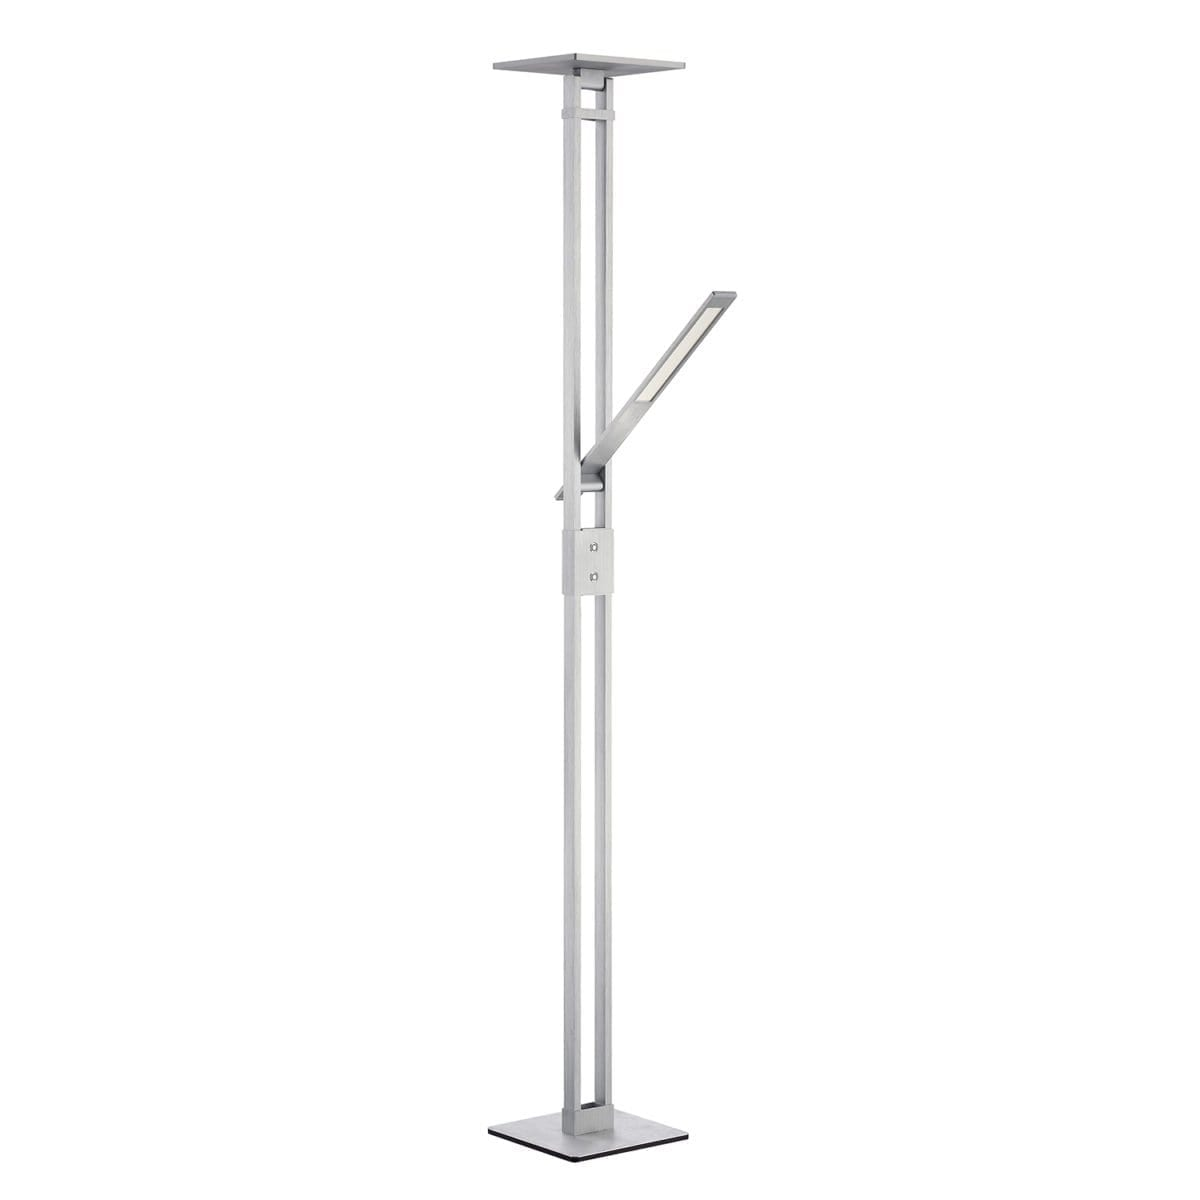 147 TC 5001 BAL LED Torchiere in Brushed Aluminum with reading light Regular Price $715.99 Sale Price $501.99